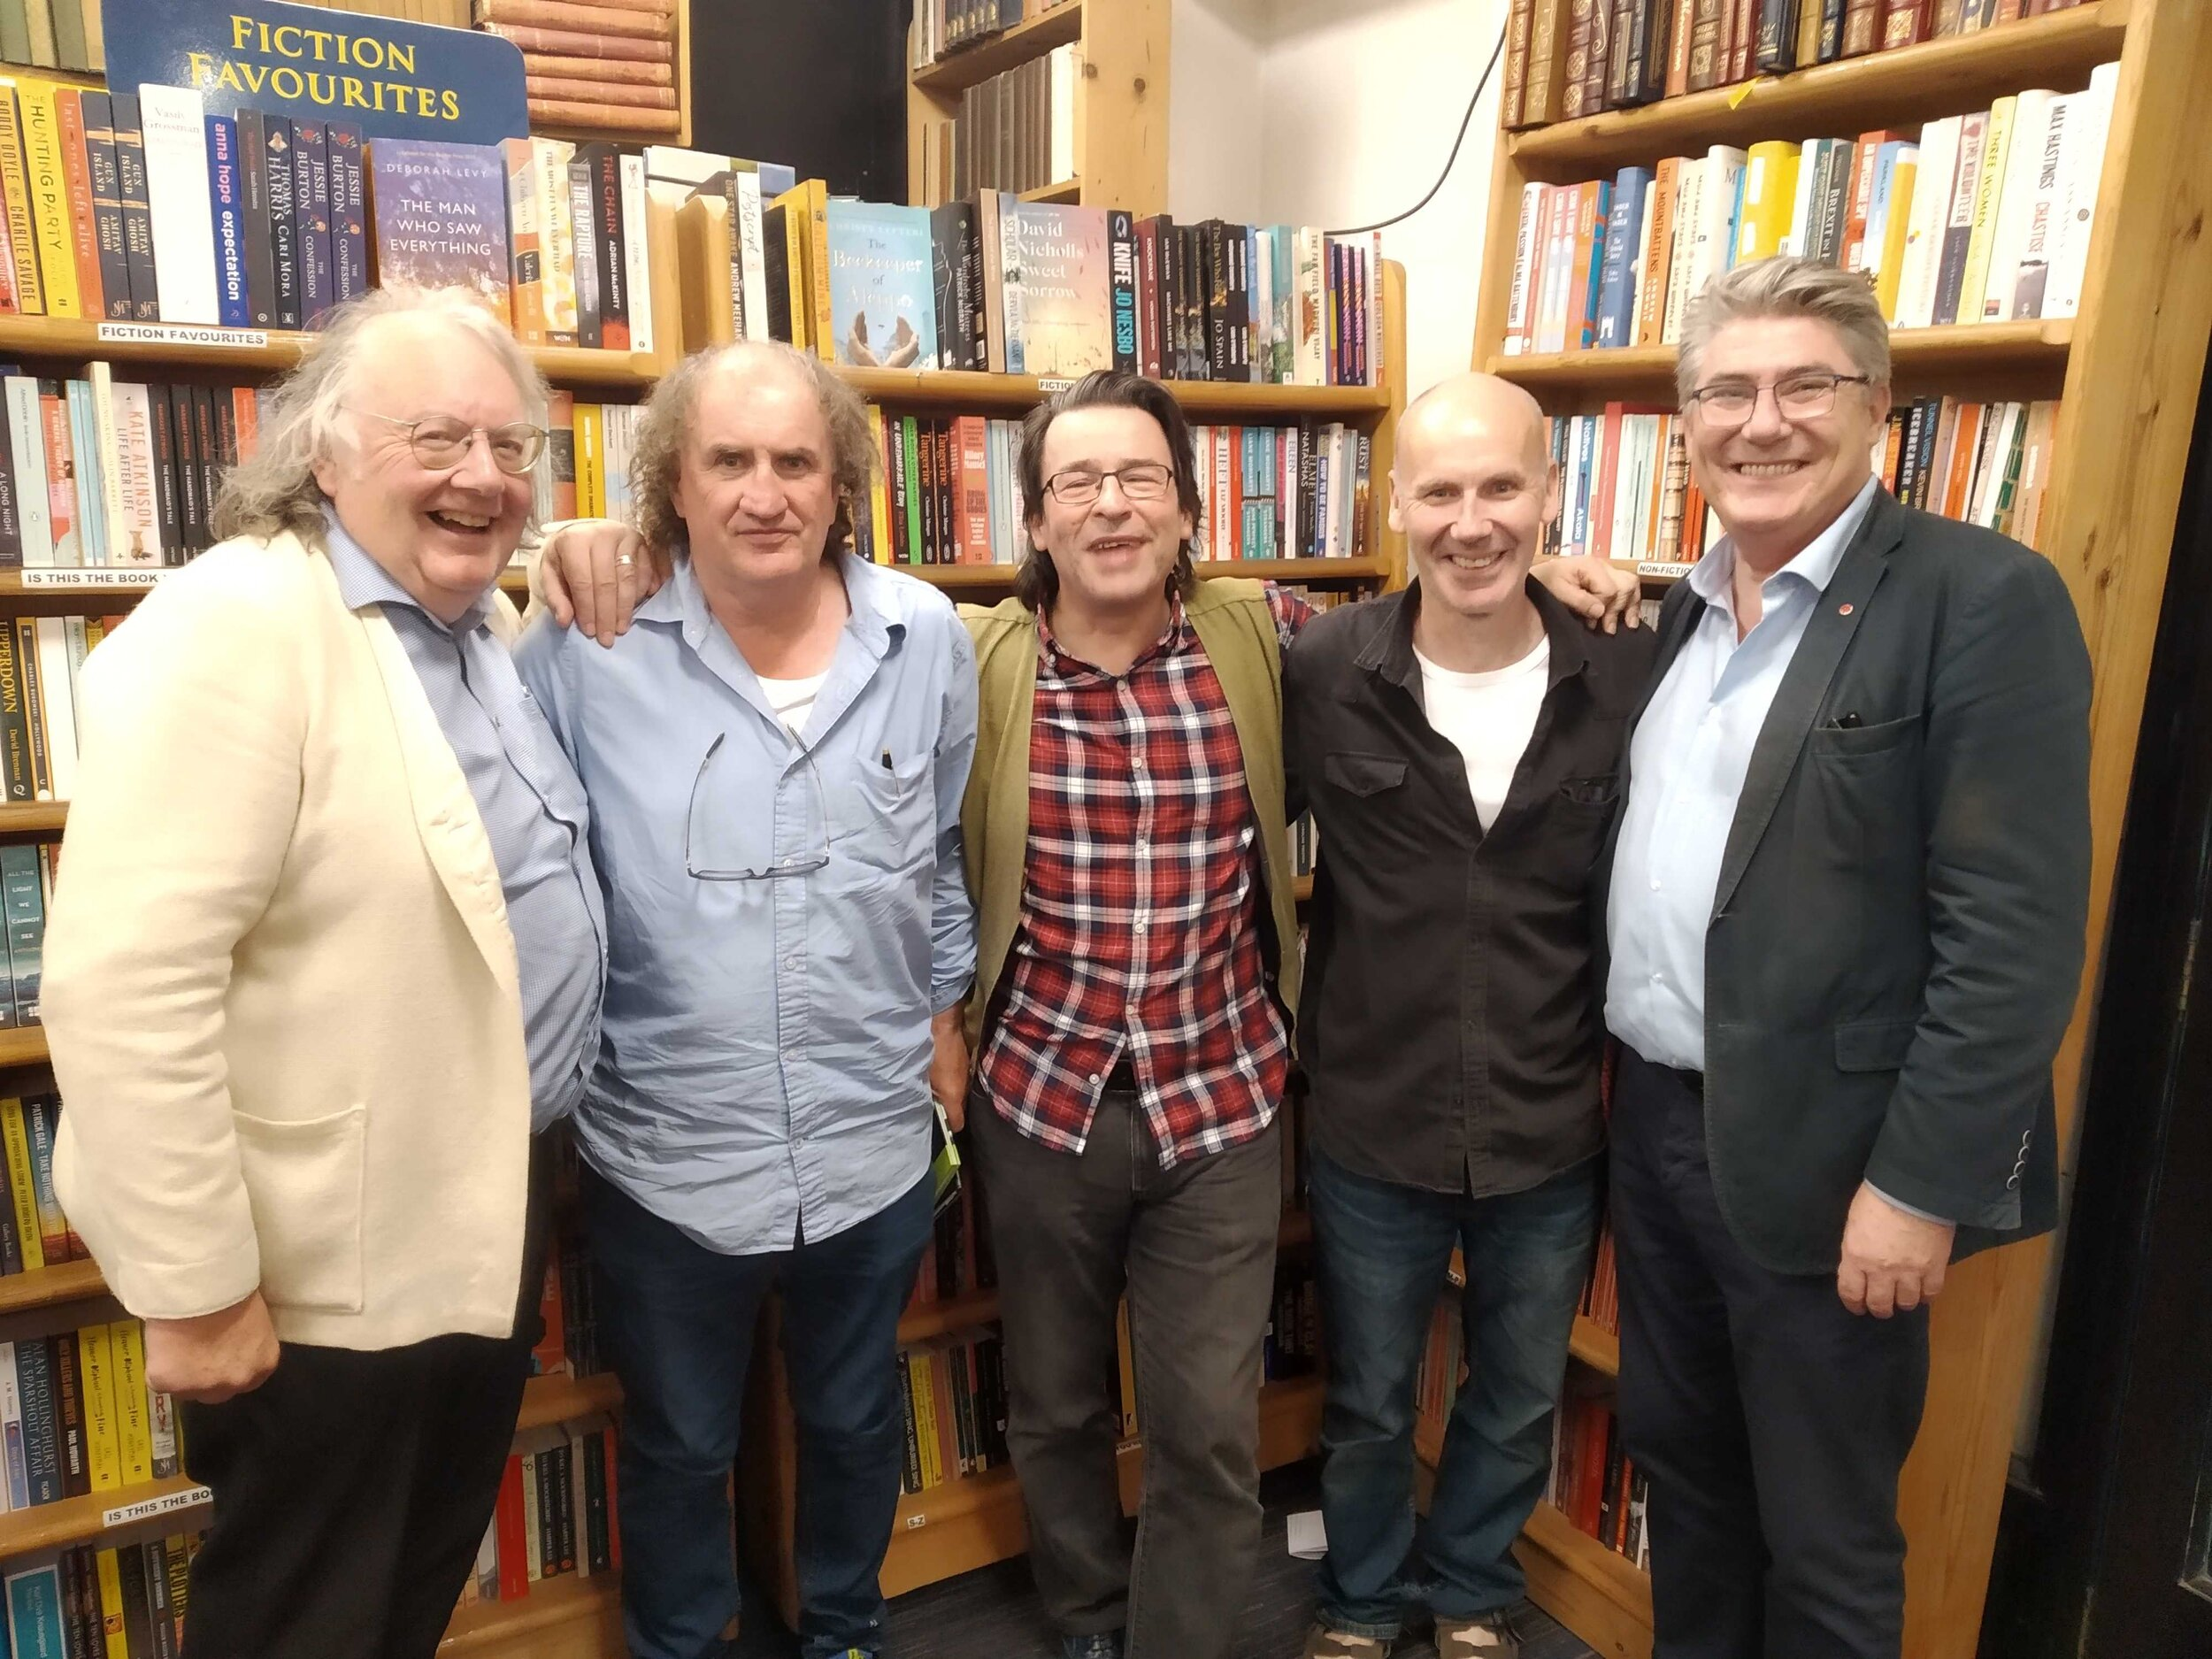 James Harrold (Arts Officer for Galway) Michael Gorman 'Fifty Poems', Vinny, Charlie and Gary Mc Mahon